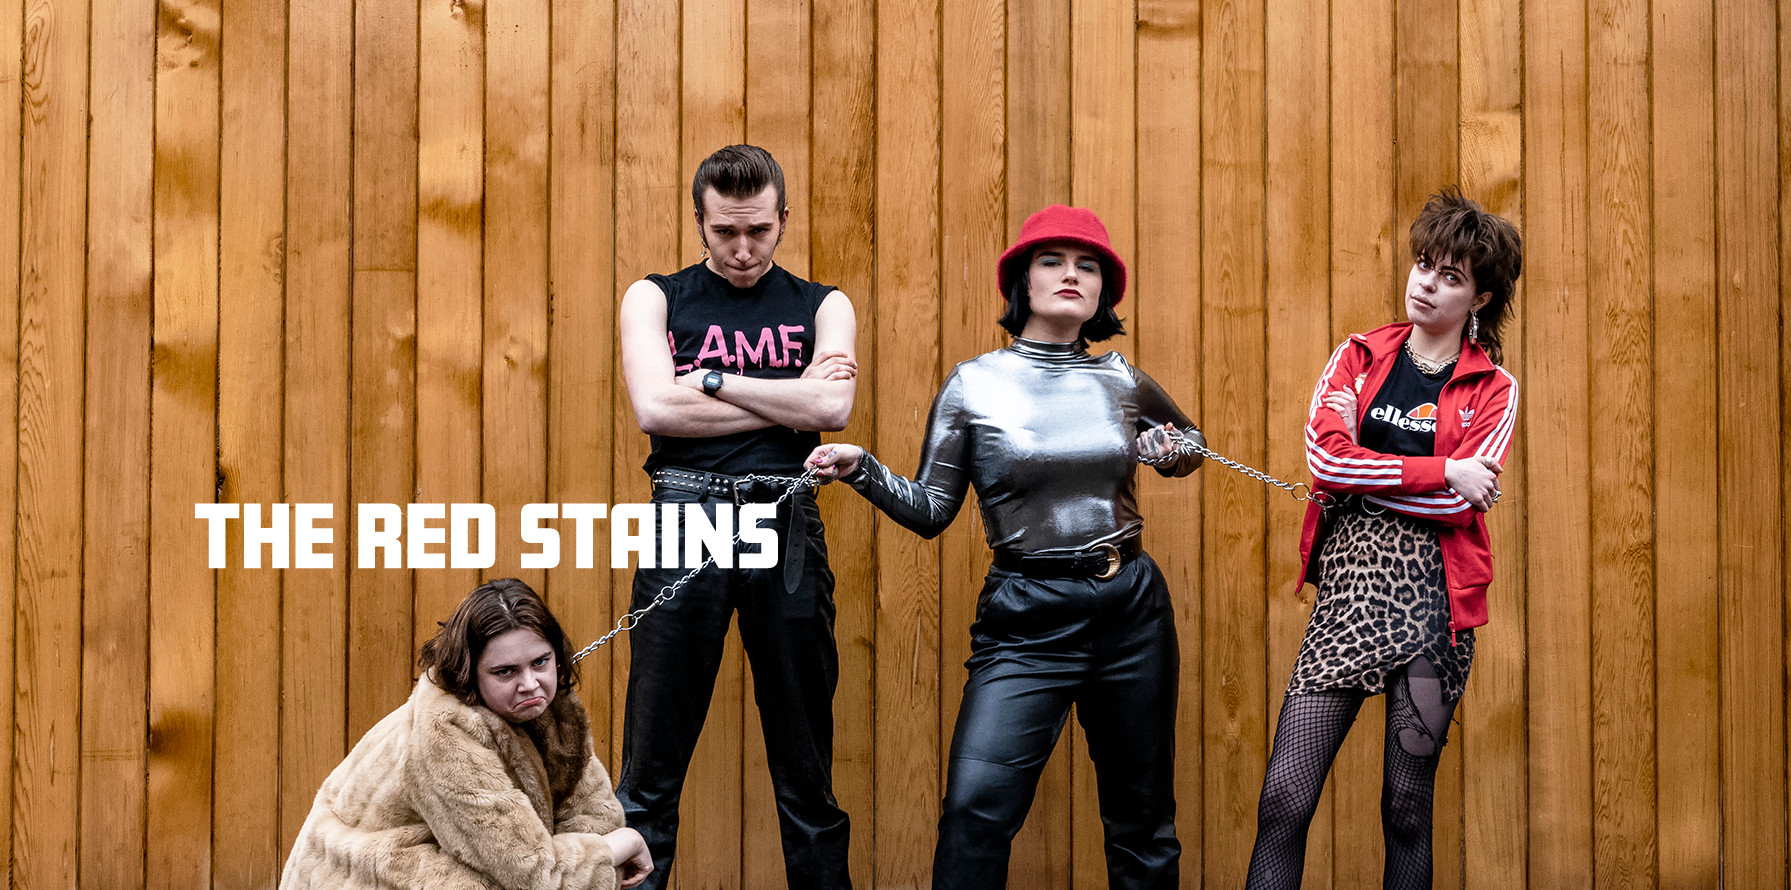 The Red stains (155) Promo.jpg